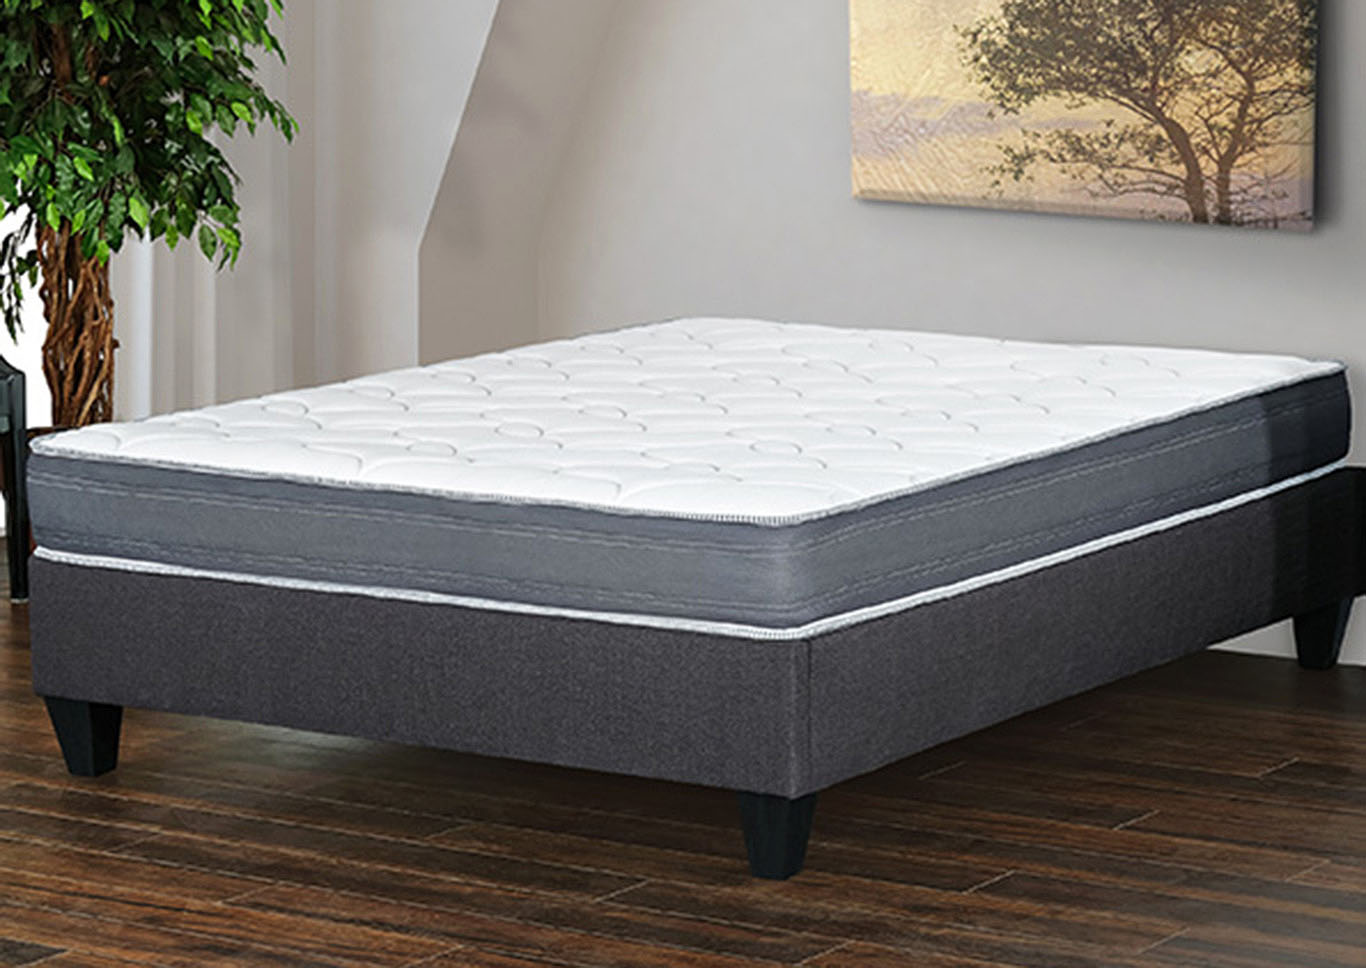 Primo Luna Deluxe Twin Mattress,Primo International